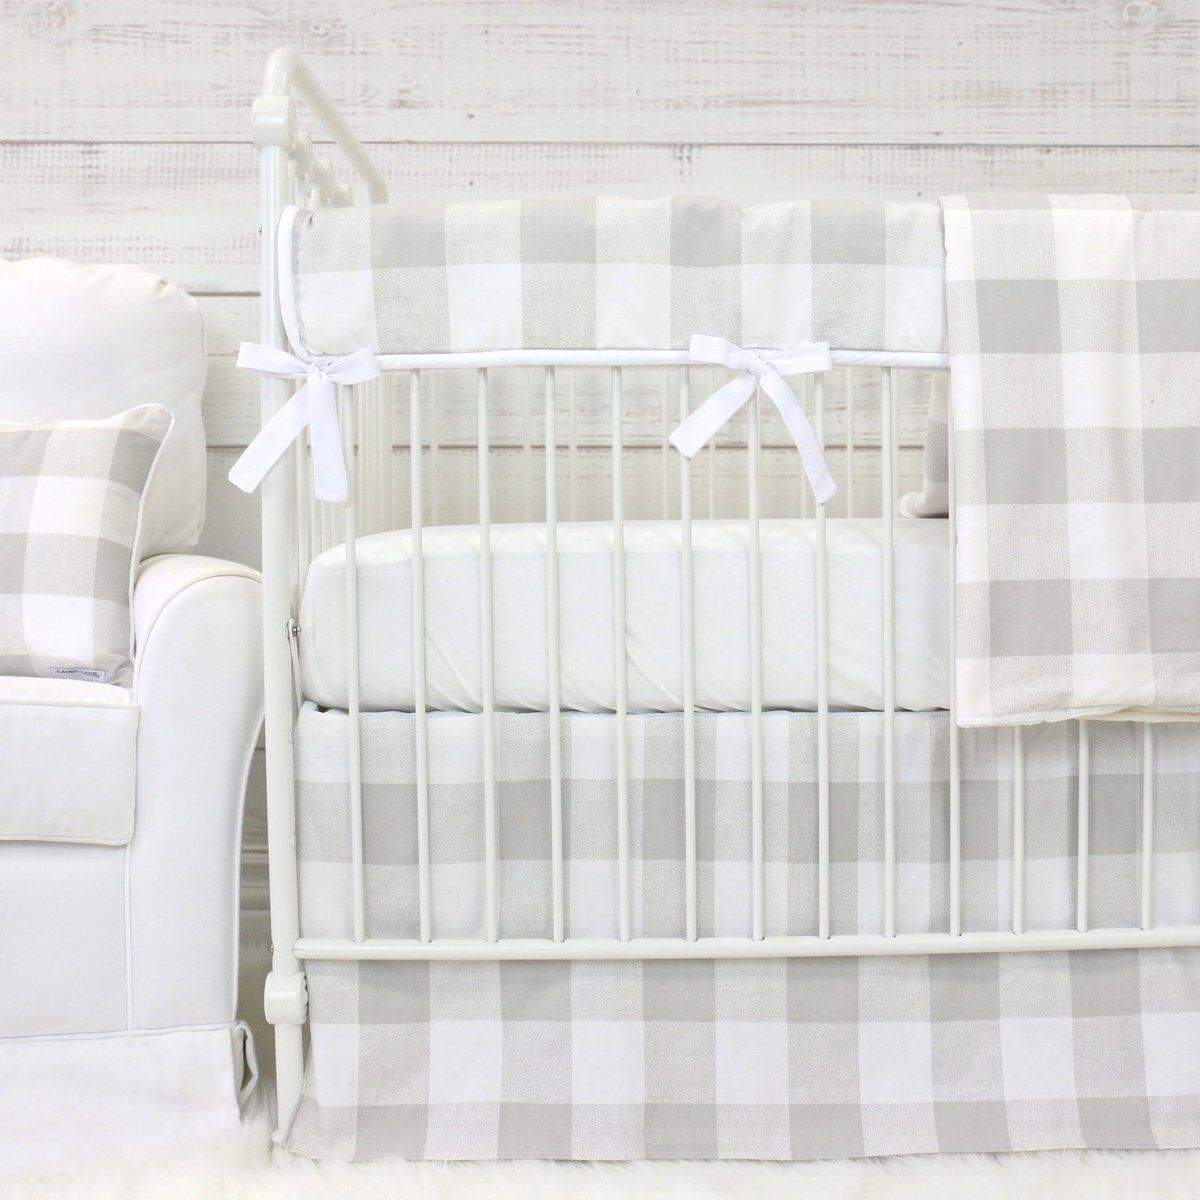 Fletcher S Farmhouse Baby Bedding Swatch Kit Farmhouse Baby Bedding Crib Bedding Crib Bedding Boy